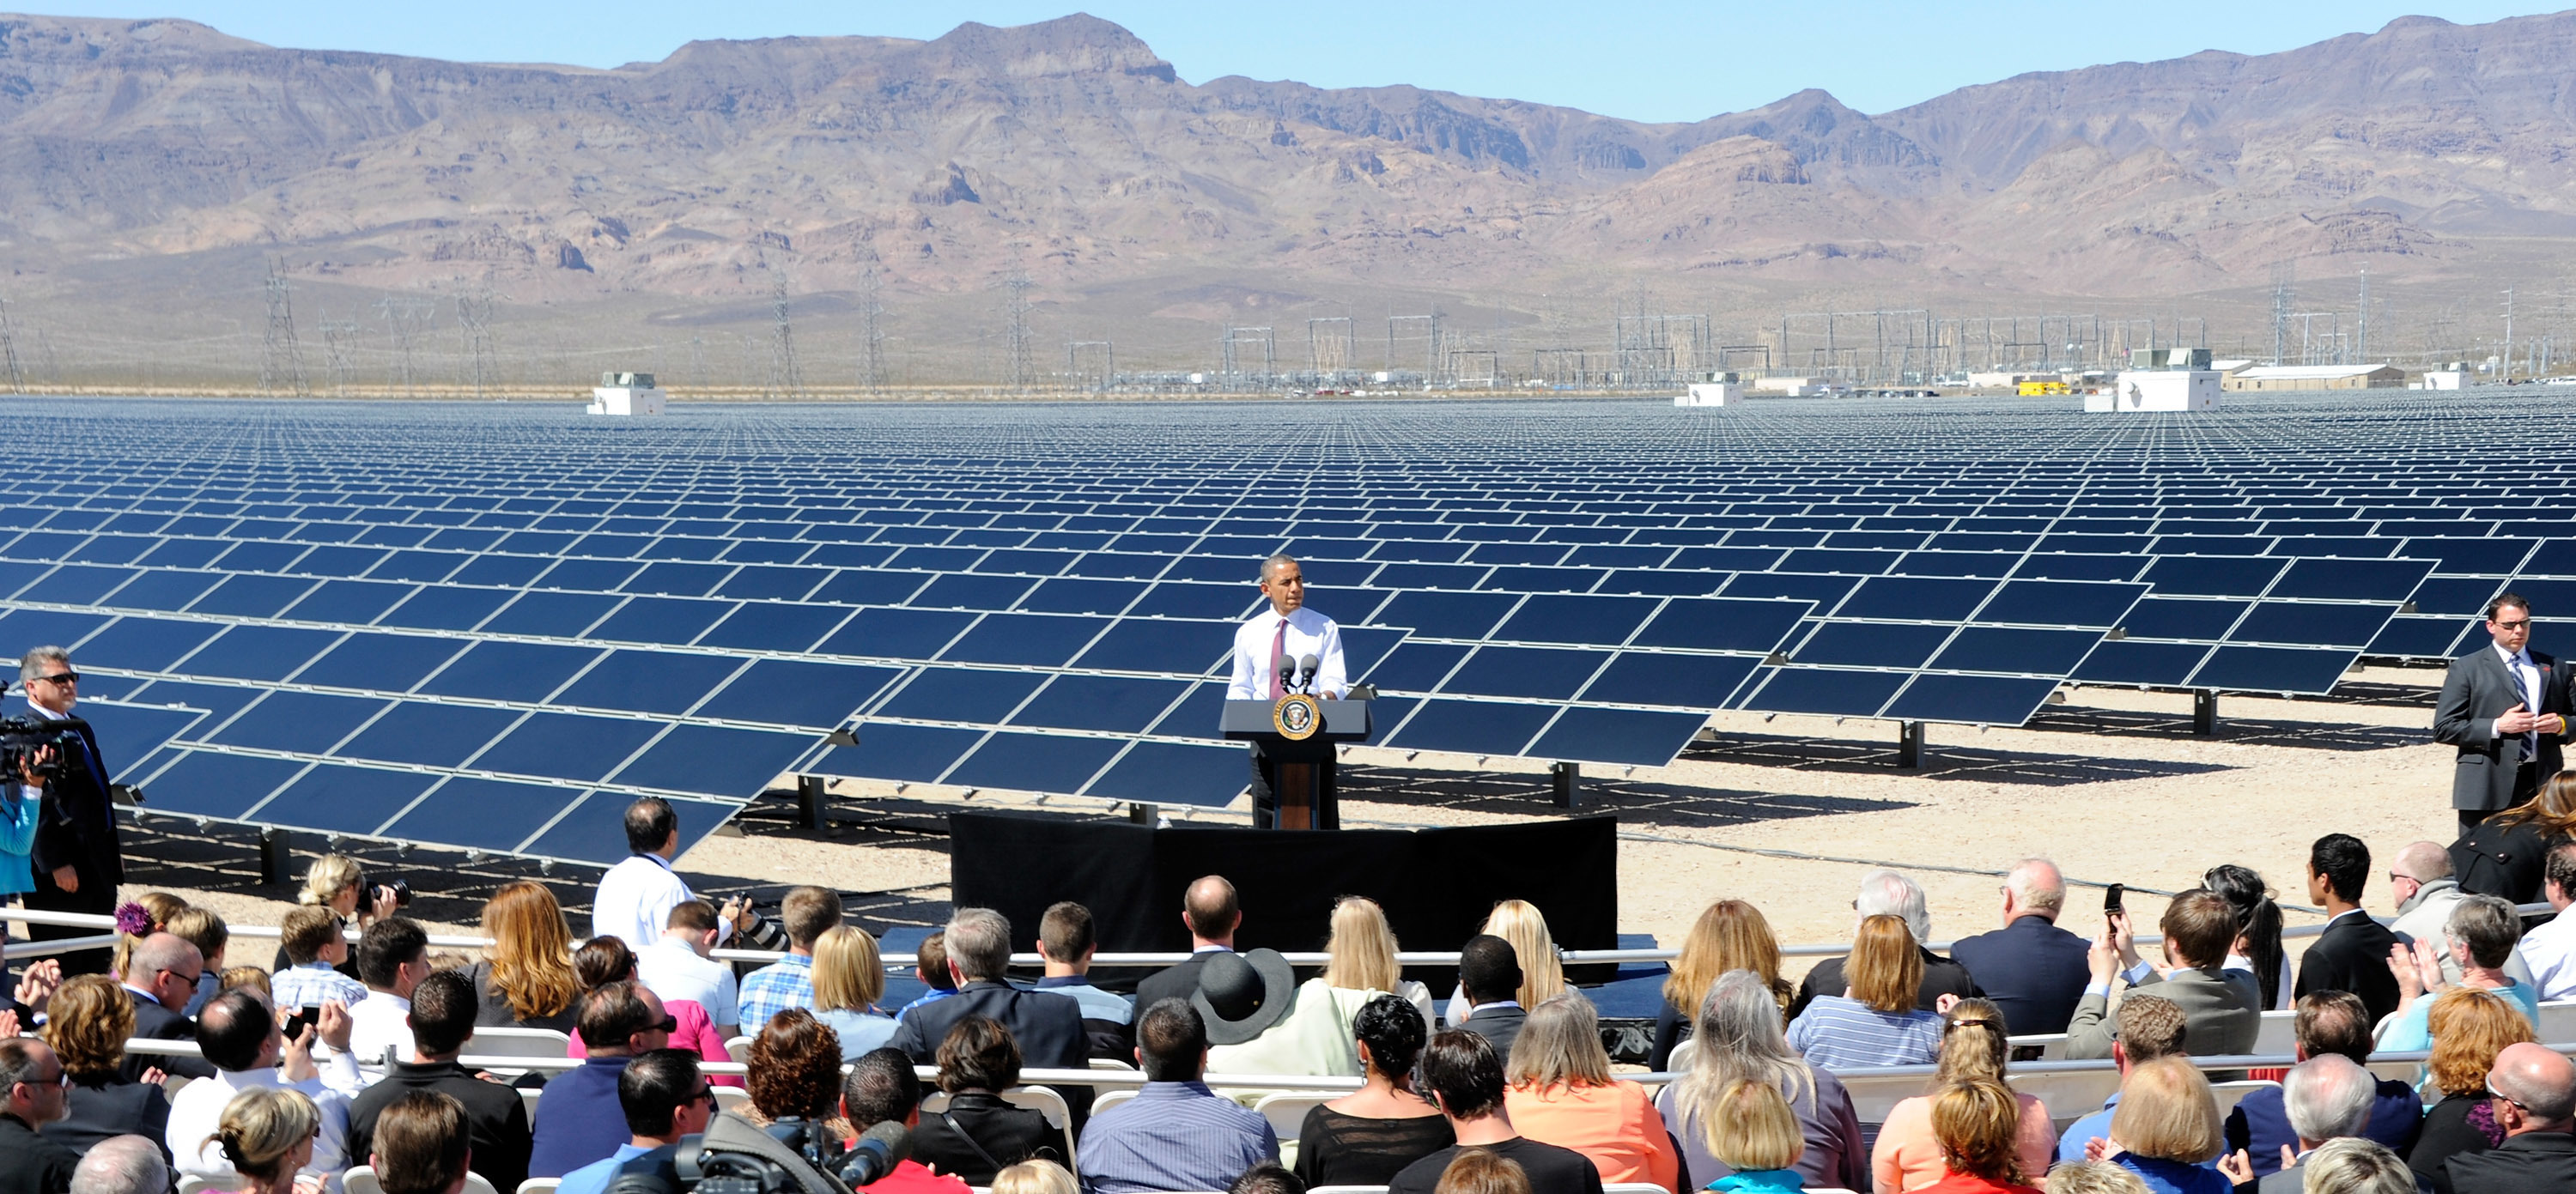 President Barack Obama speaks at Sempra U.S. Gas & Power's Copper Mountain Solar 1 facility, the largest photovoltaic solar plant in the United States on March 21, 2012. (Ethan Miller/Getty Images)